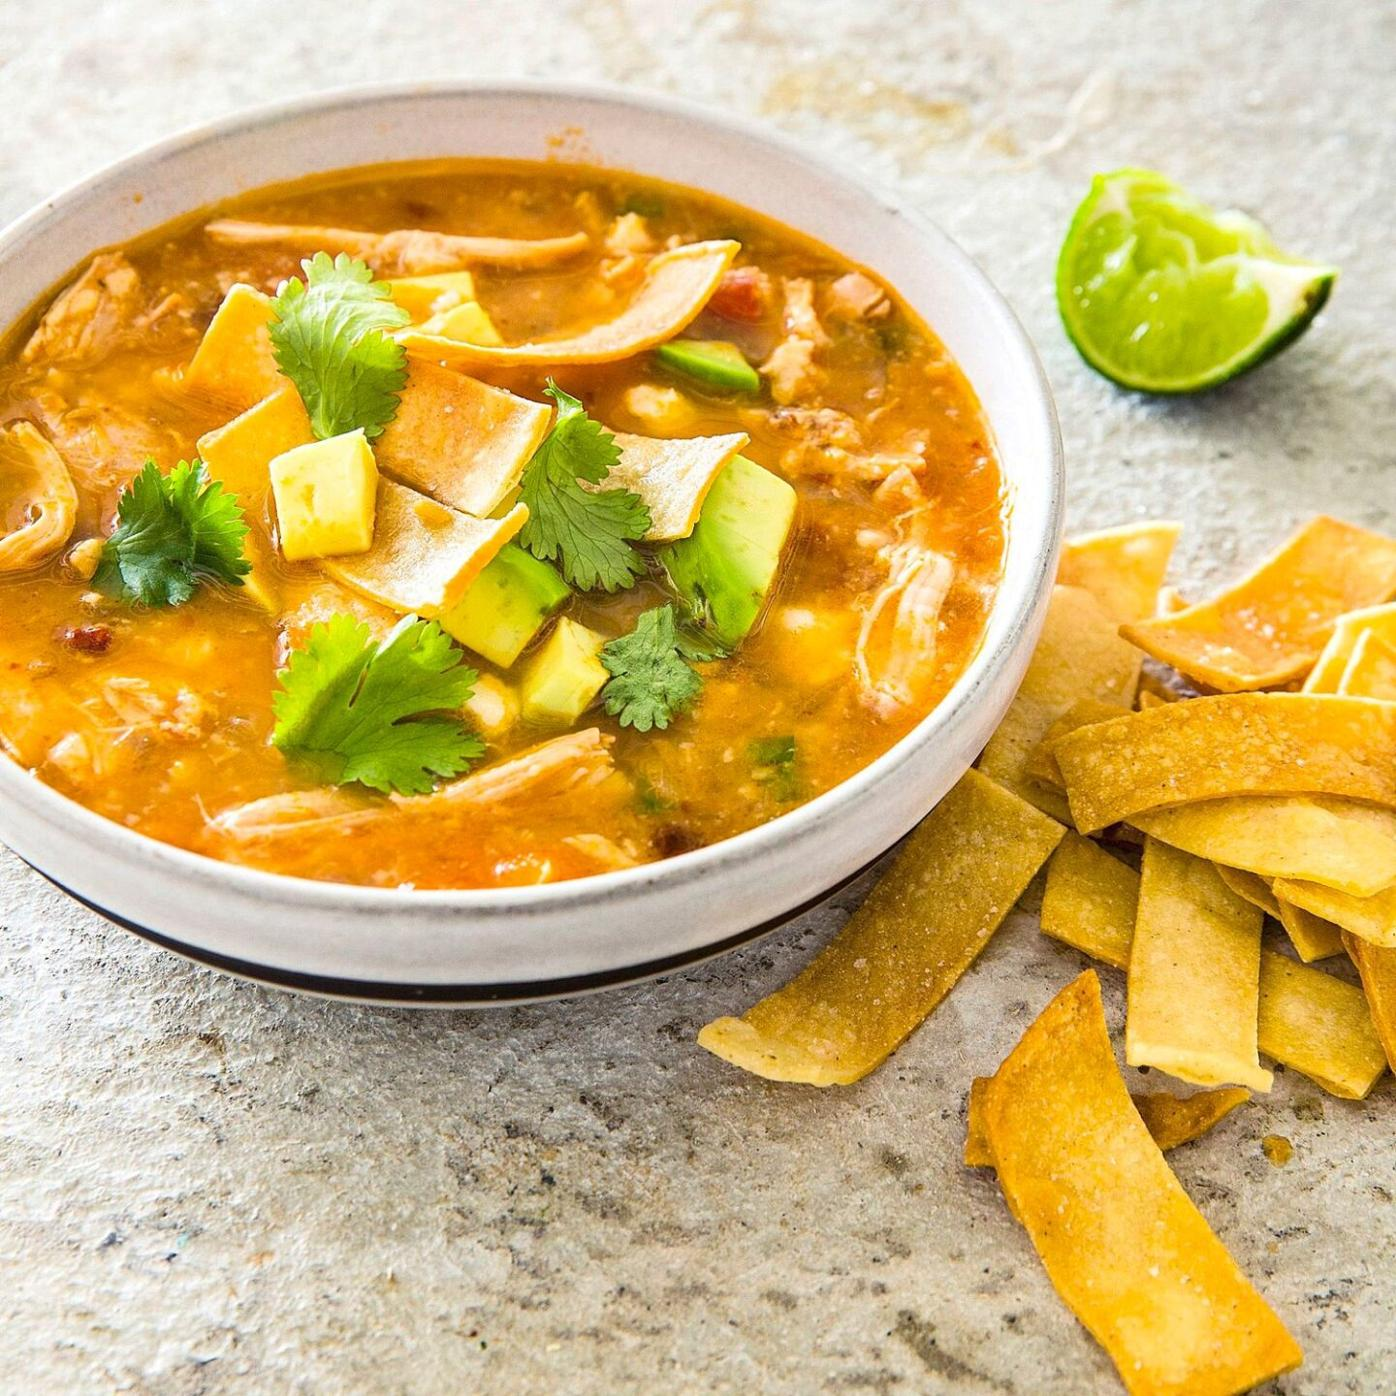 A deeply flavorful tortilla soup from a multi-cooker